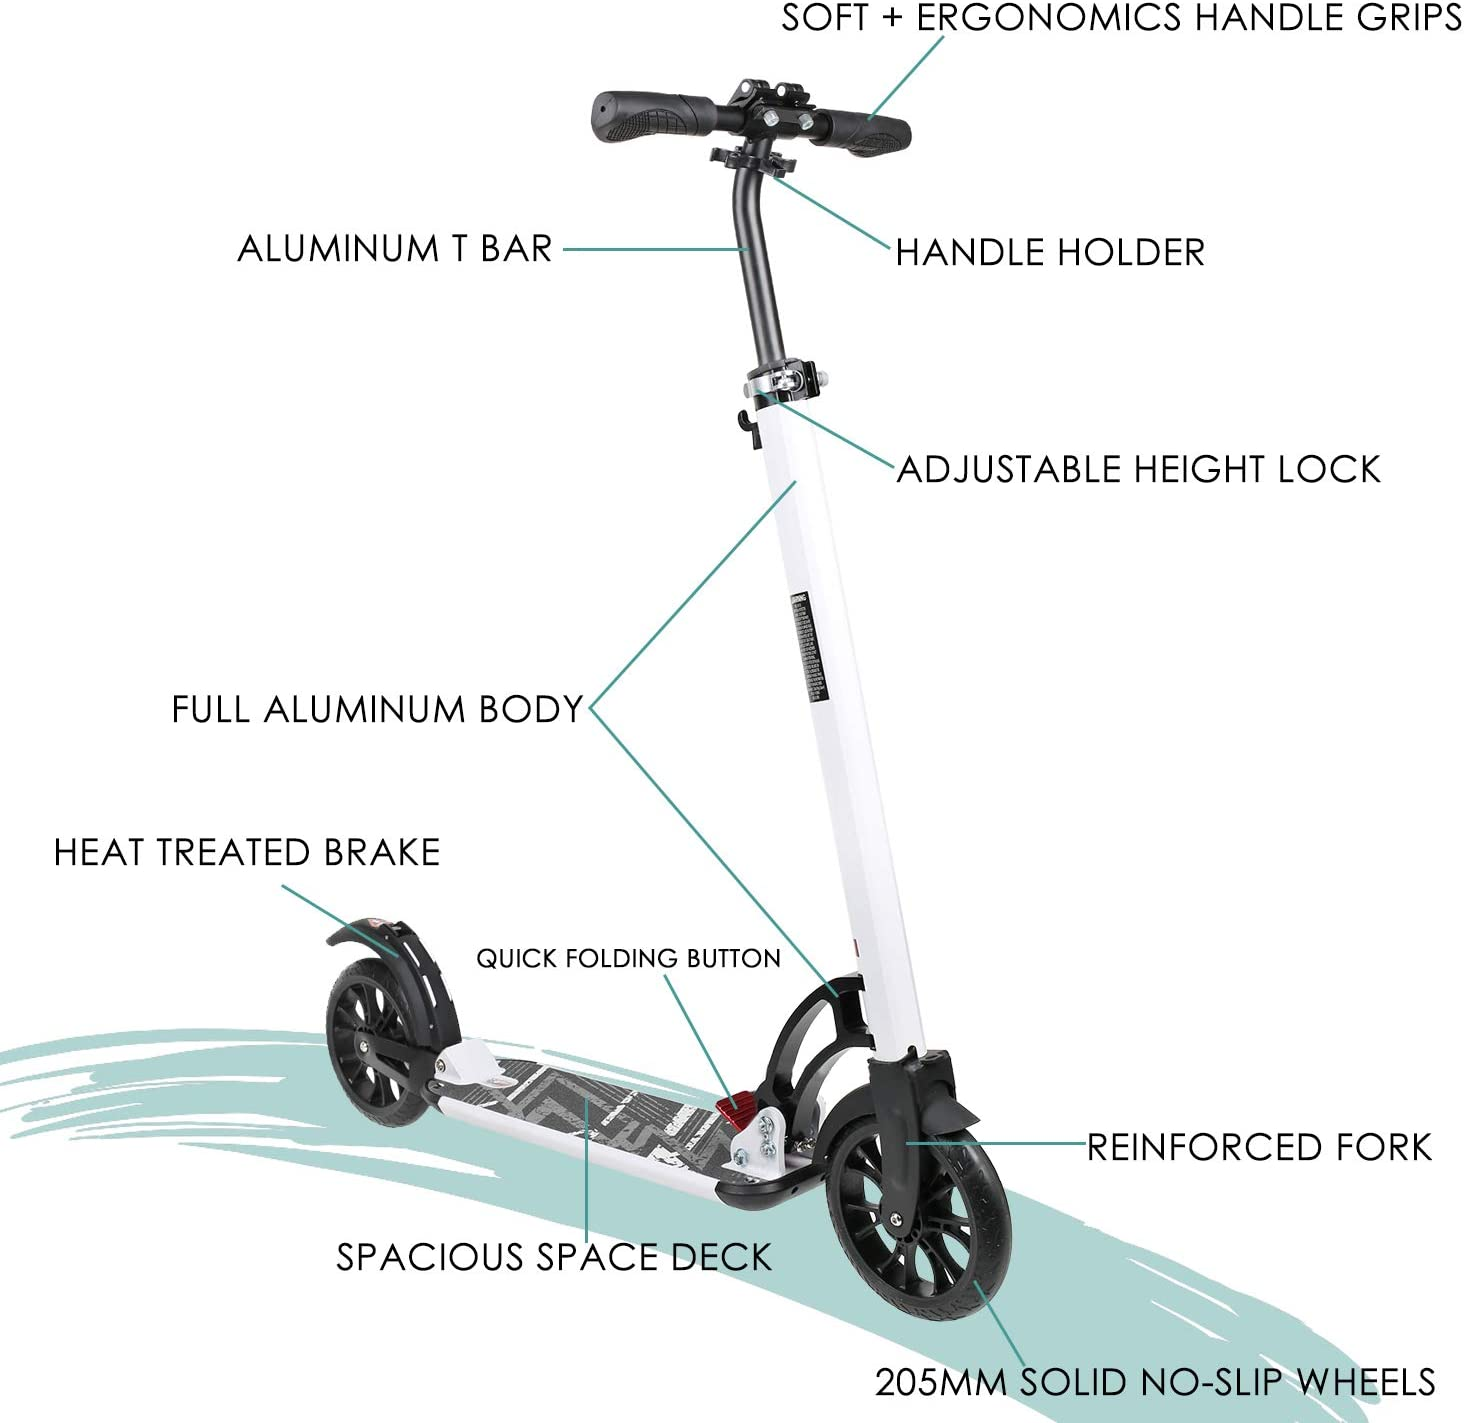 Aesthetic Design,Full Aluminum Body,3 Seconds Easy-Folding System,220lbs Capacity VOKUL Foldable Kick Scooter for Adults Teens Kids with Big 200mm Wheel,Hand Disc Brake Two-Wheels Commuter Scooter